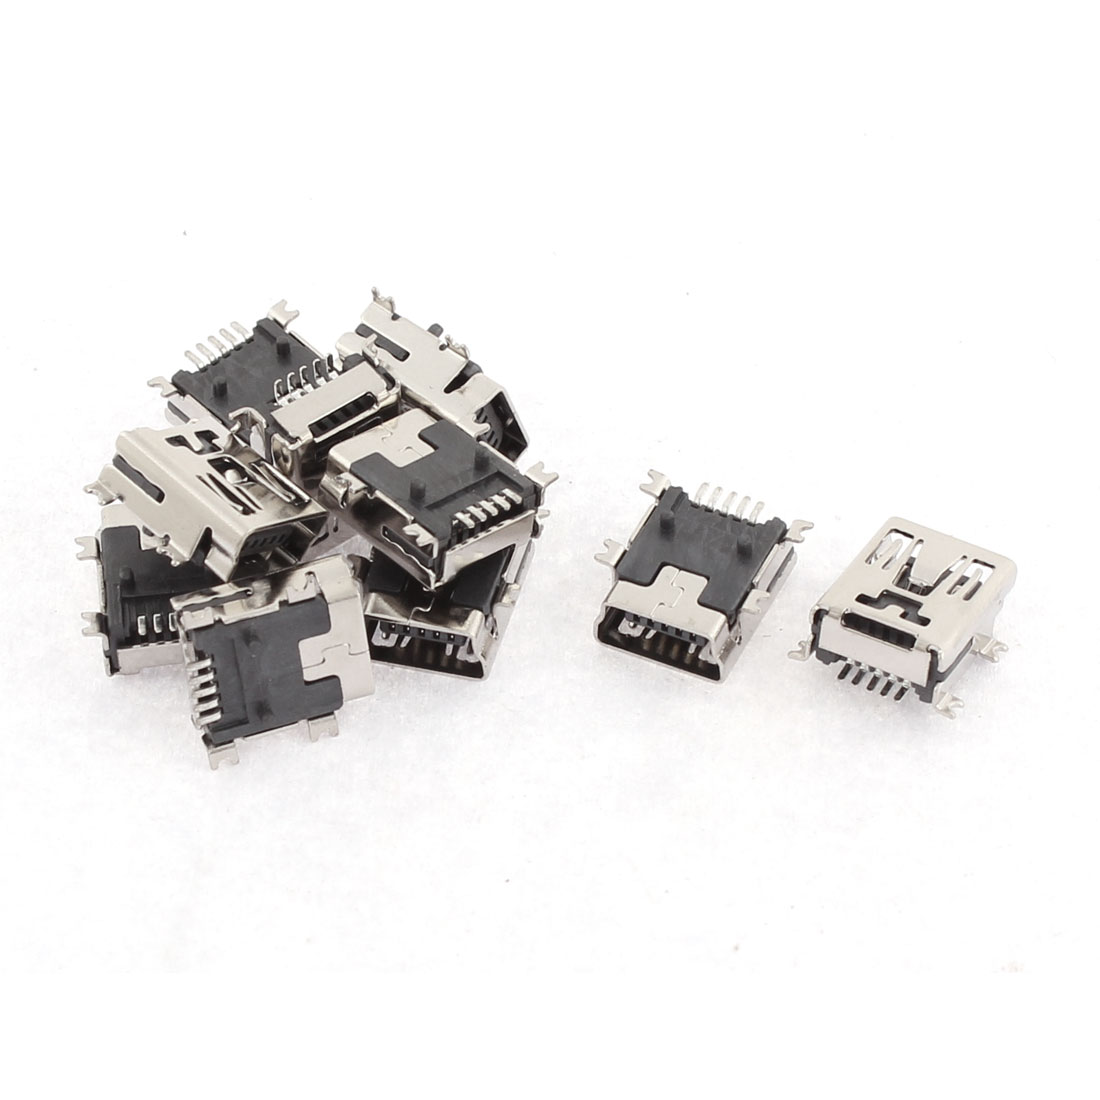 10Pcs Type B Female 5 Terminals Socket Solder Micro USB Connector Port